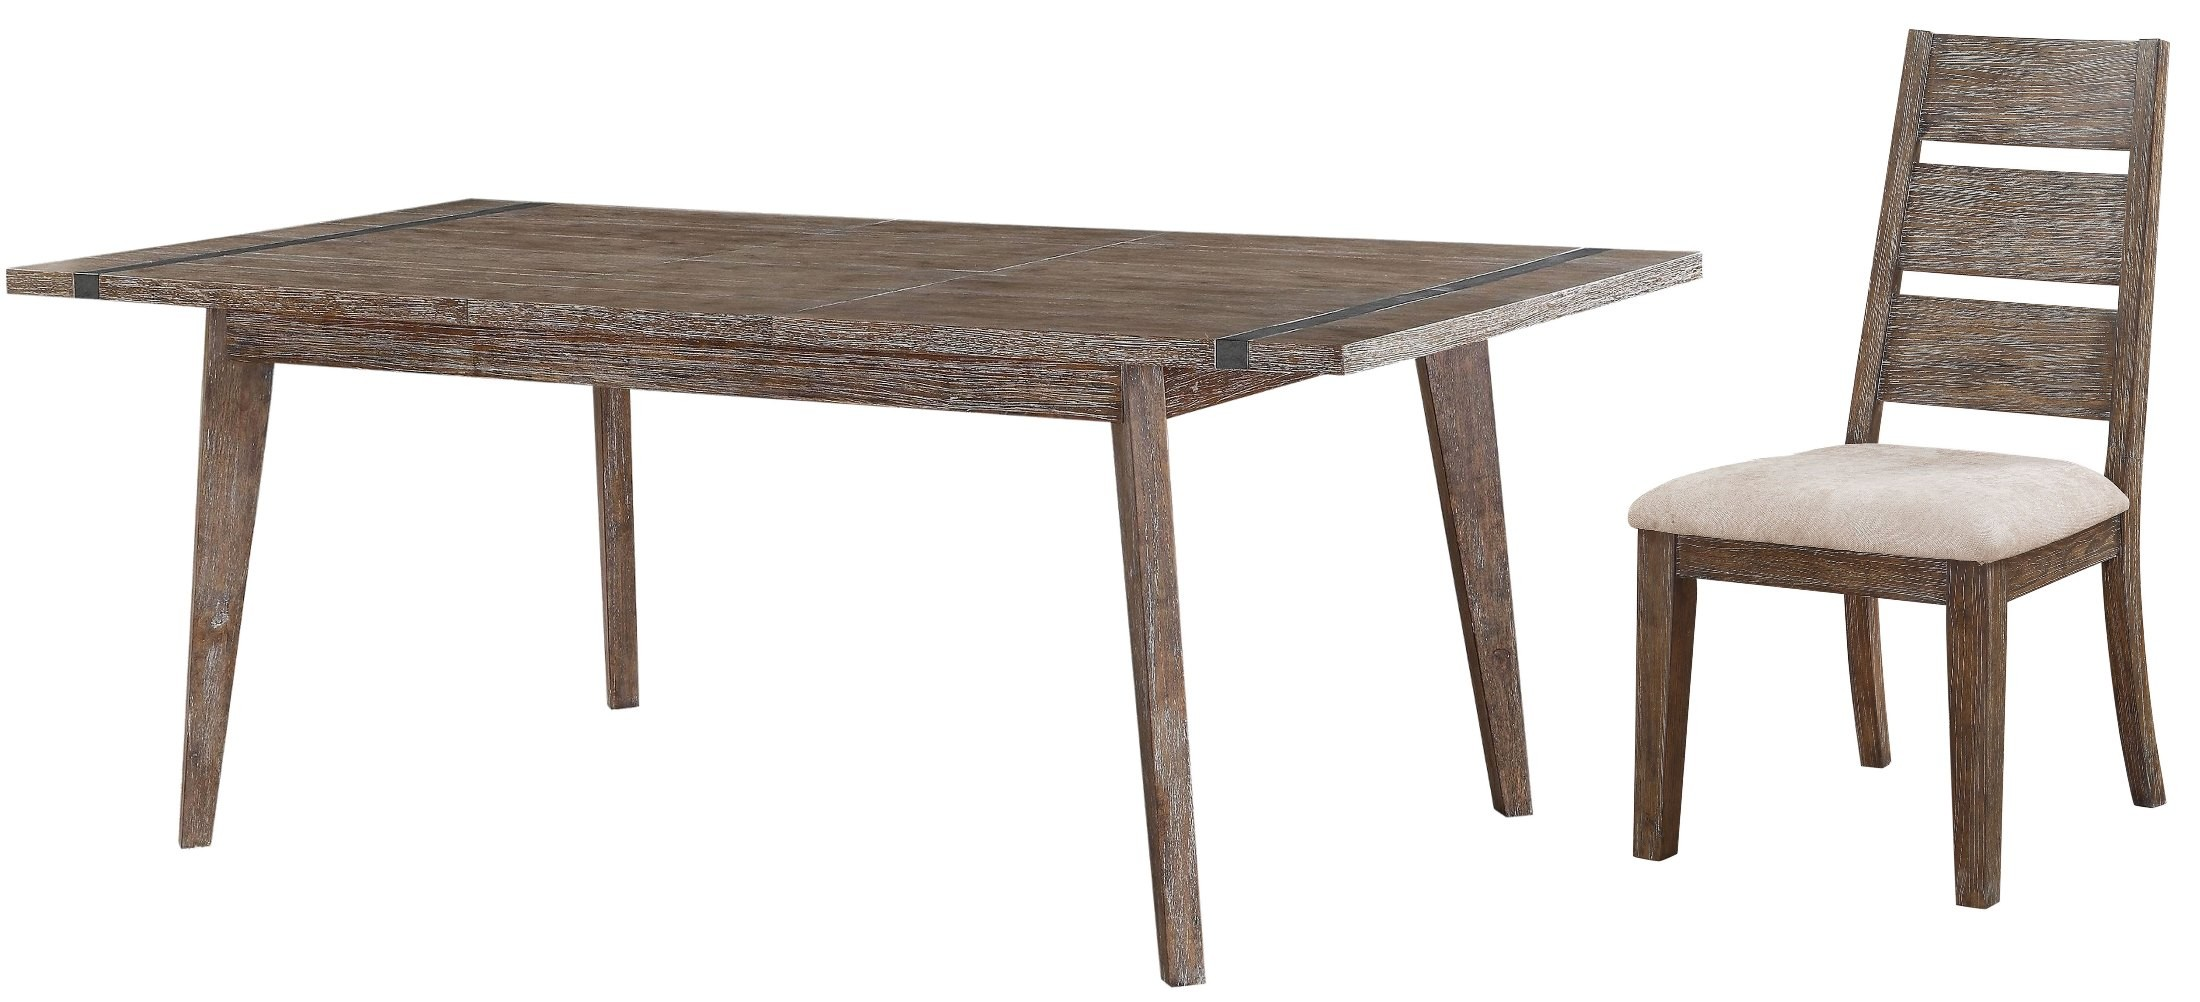 Viewpoint rustic butterfly leaf extendable dining table for White dining table with leaf